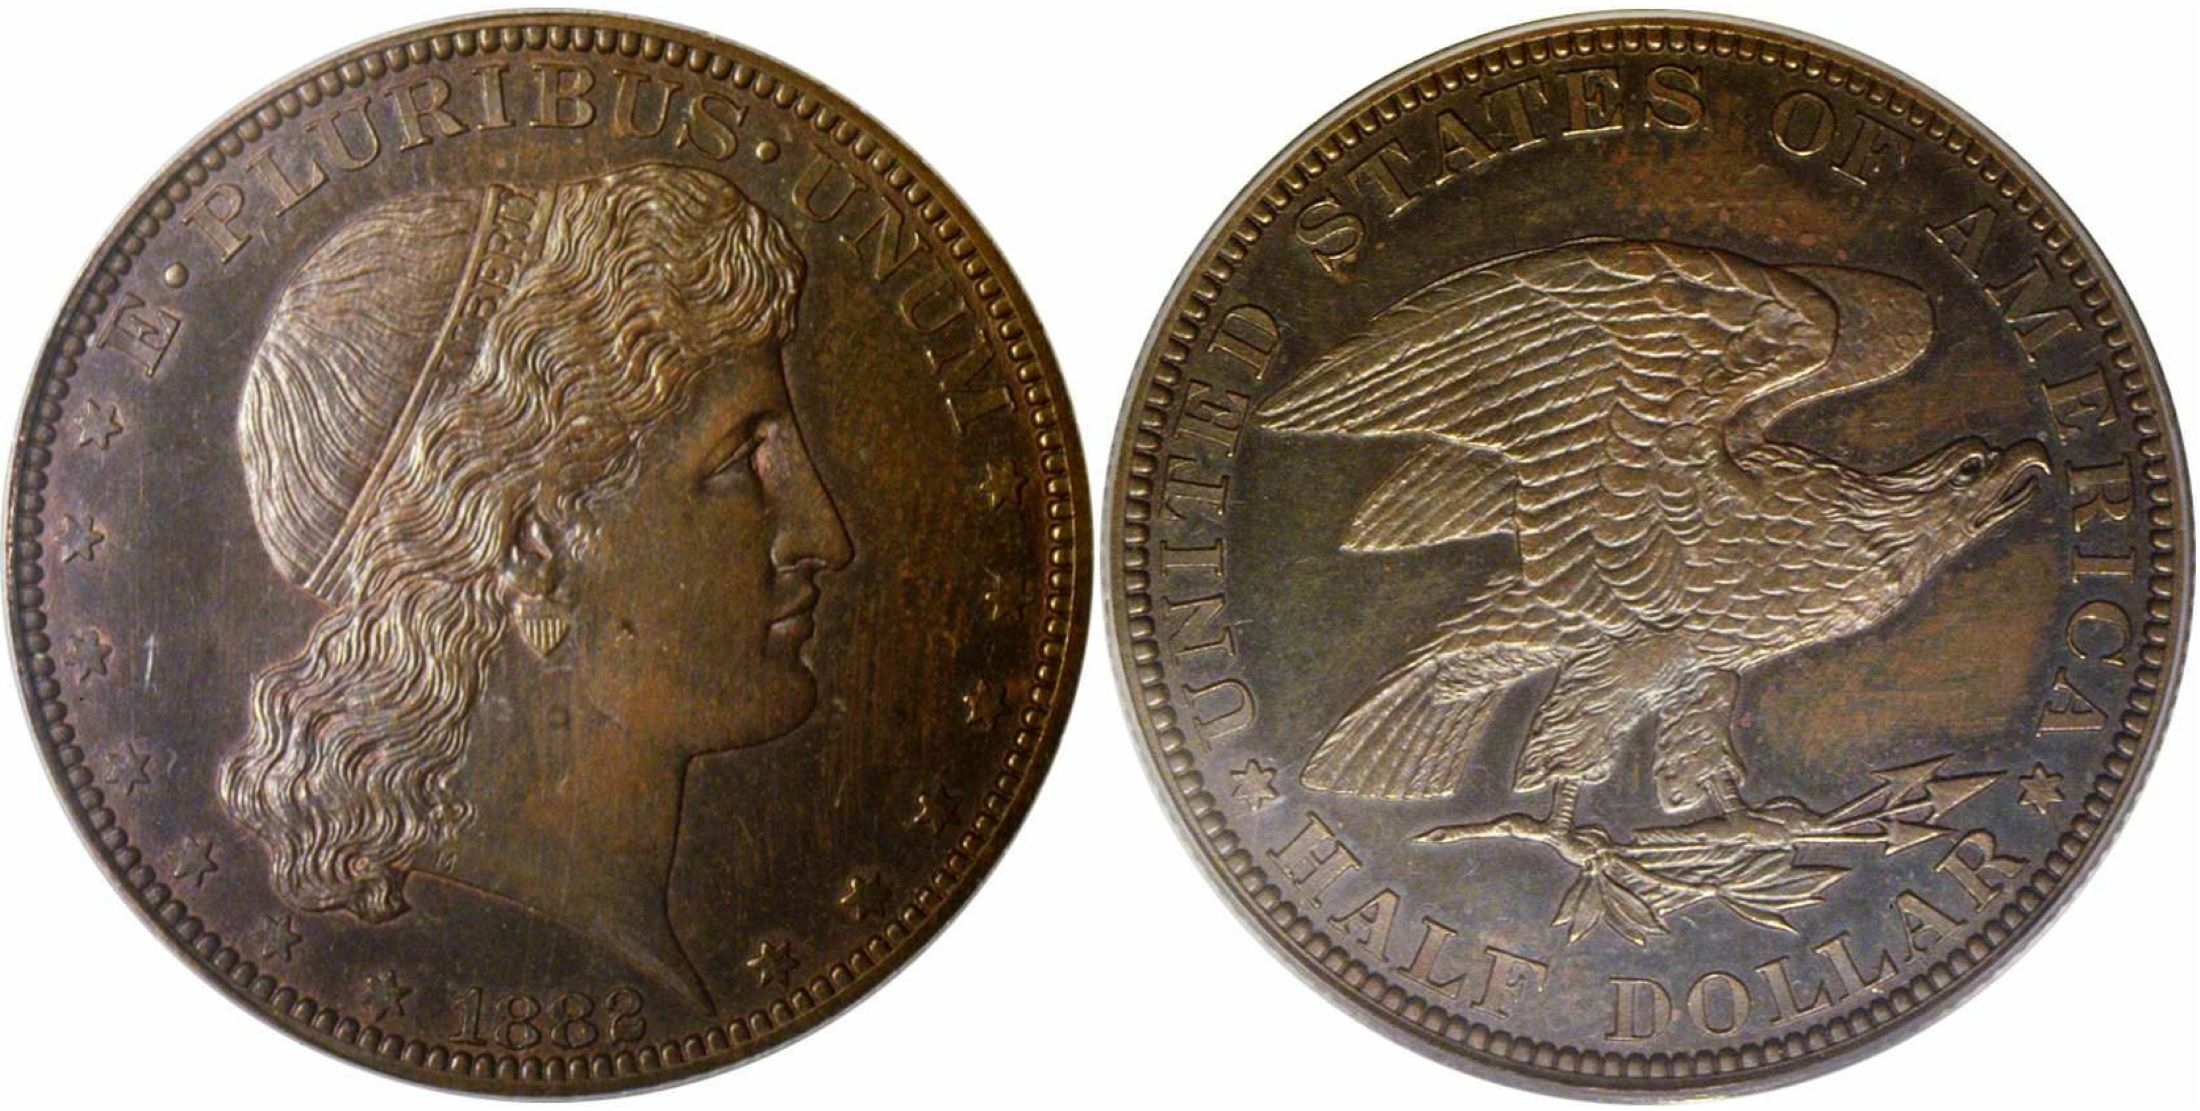 "PCGS PR65BN<BR>Image courtesy of <a href=""http://www.ha.com"" target=""_blank"">Heritage Numismatic Auctions</a>"